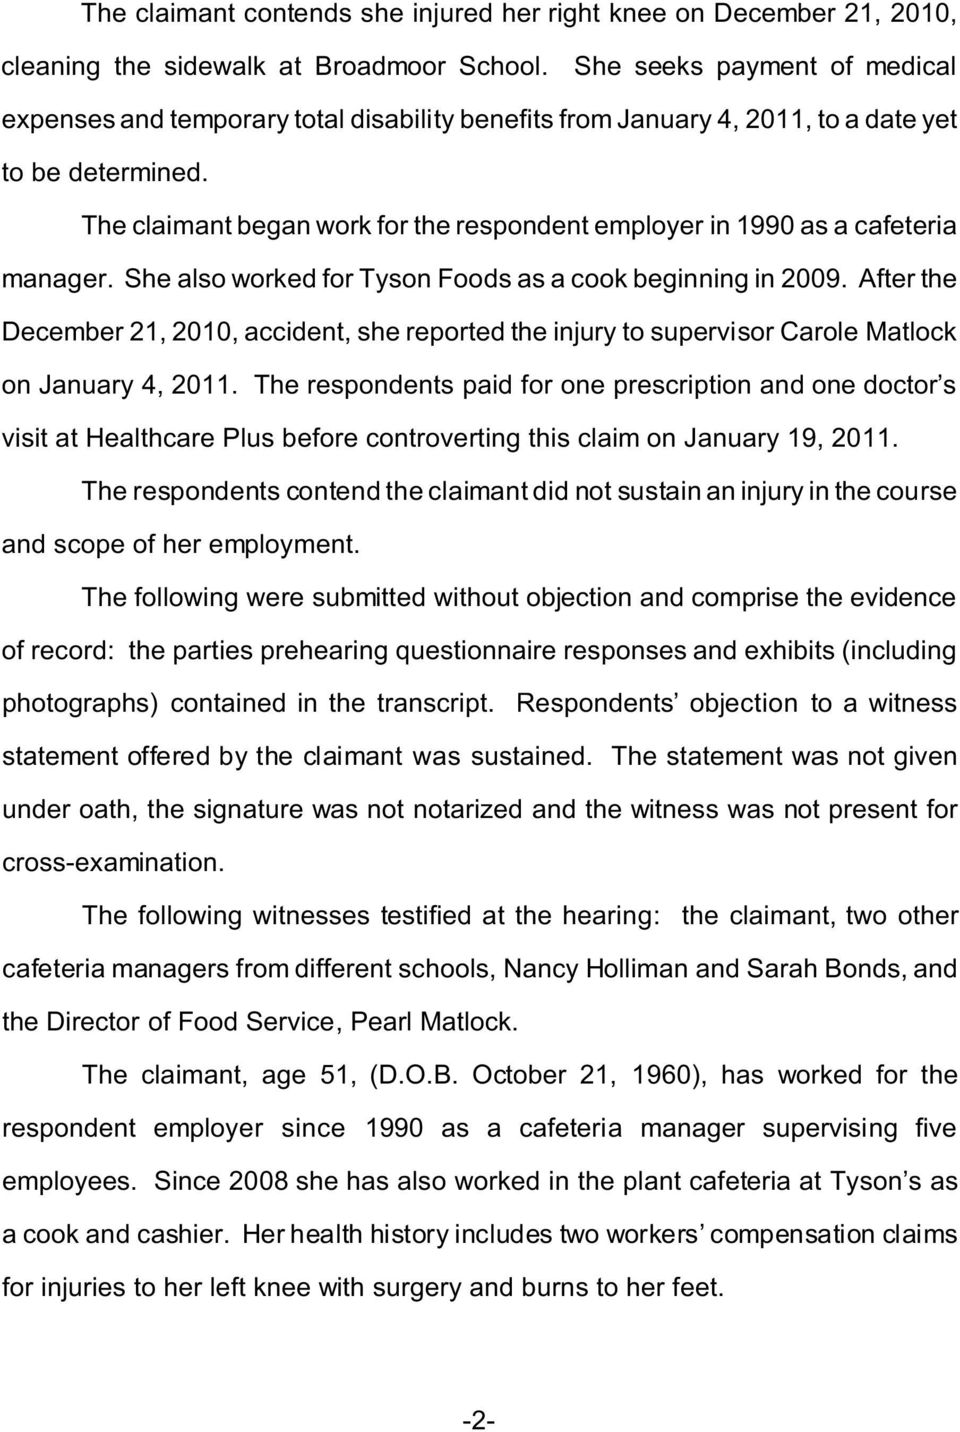 The claimant began work for the respondent employer in 1990 as a cafeteria manager. She also worked for Tyson Foods as a cook beginning in 2009.